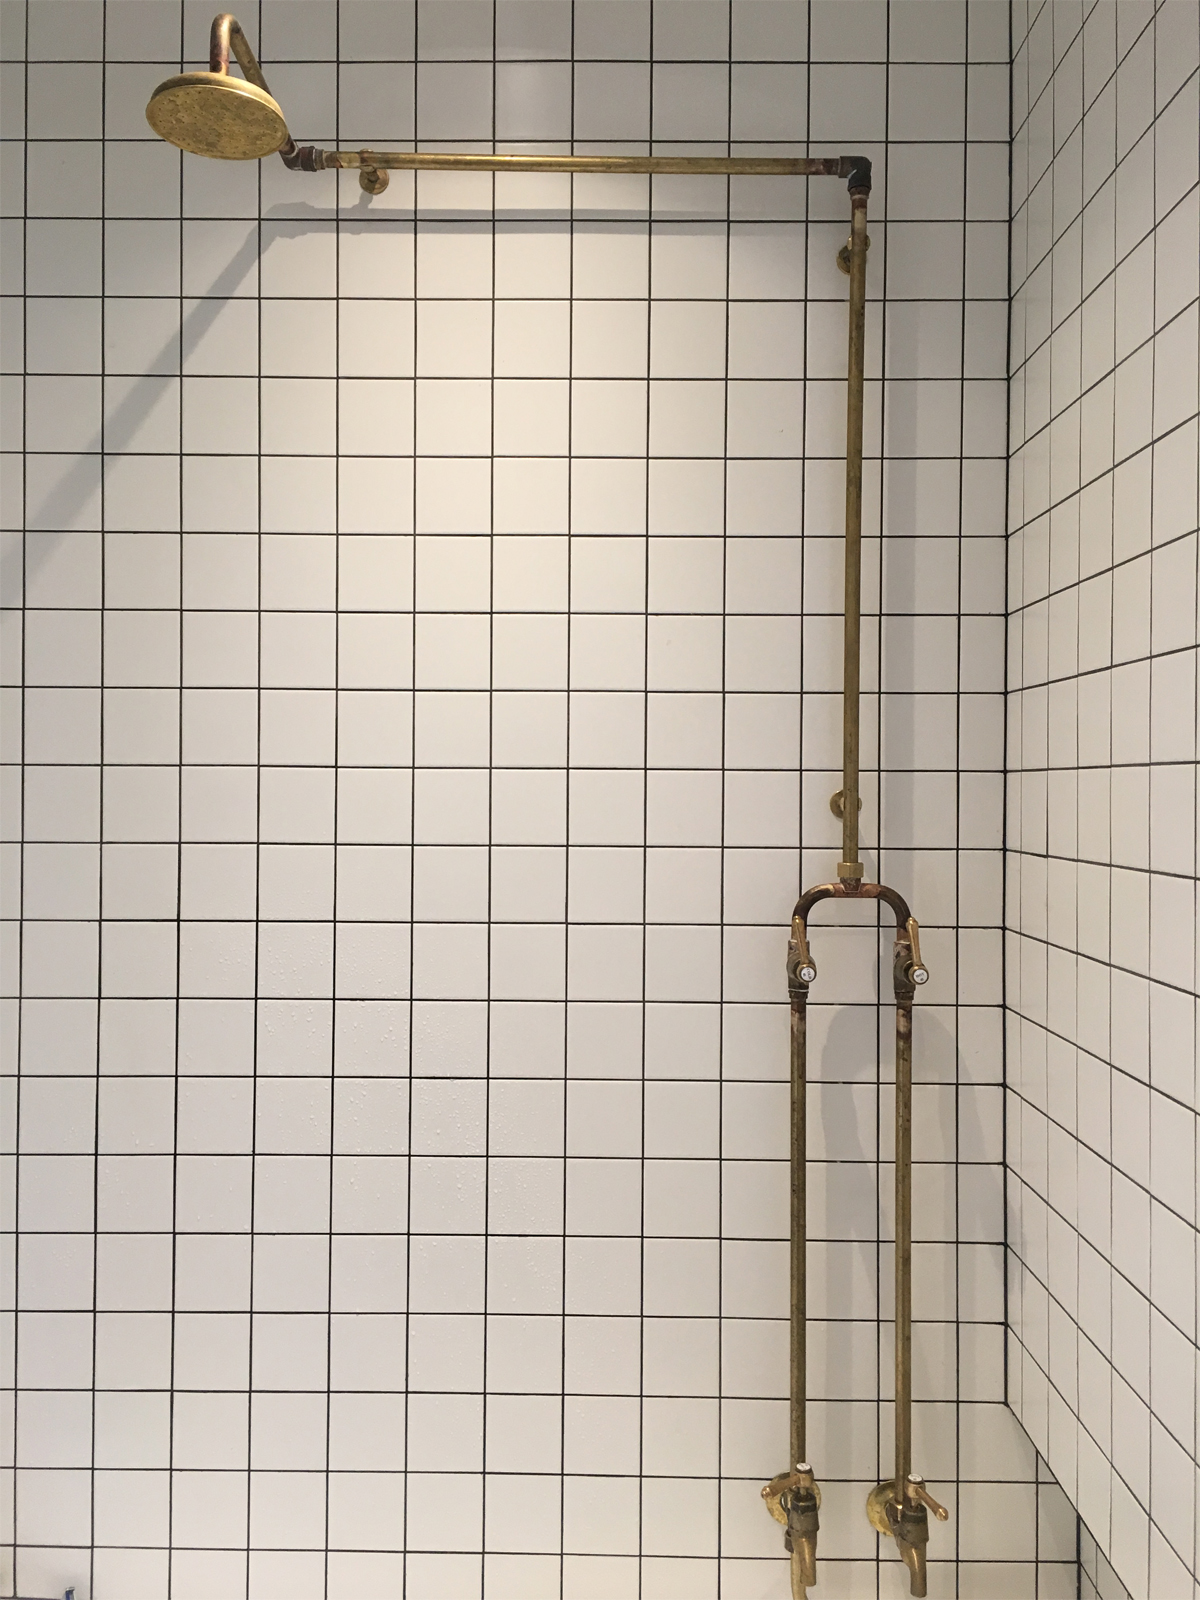 Customised Roulette Lever Tubular Shower / Bath Set with Offset Shower Head in Raw Brass Finish